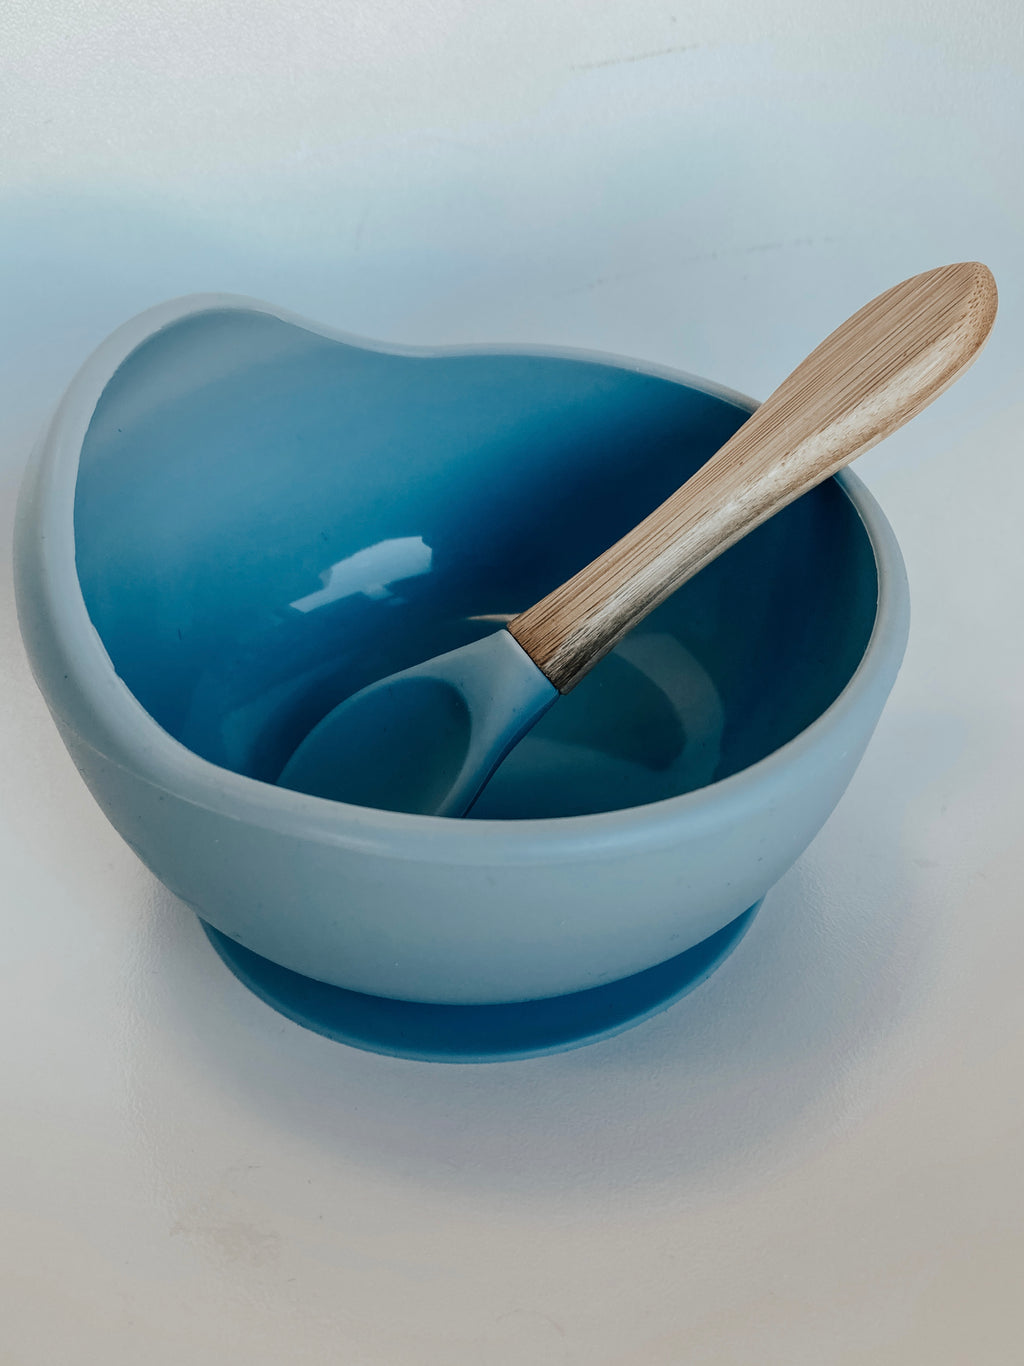 Silicone Suction Bowl & Spoon Set in Powder Blue